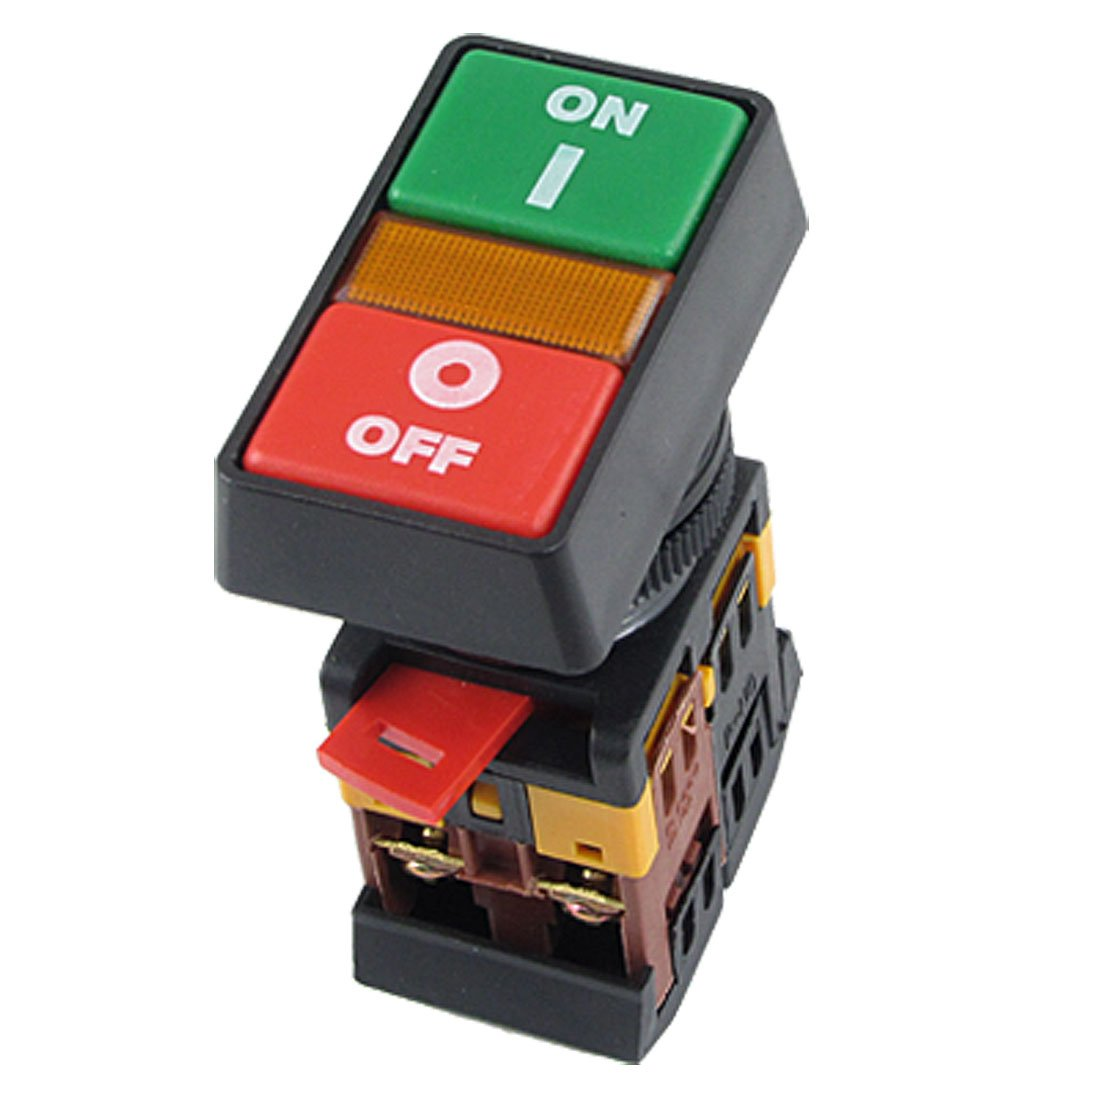 Pressonholdofflogictoggleswitchcircuitpng Push Button Onoff